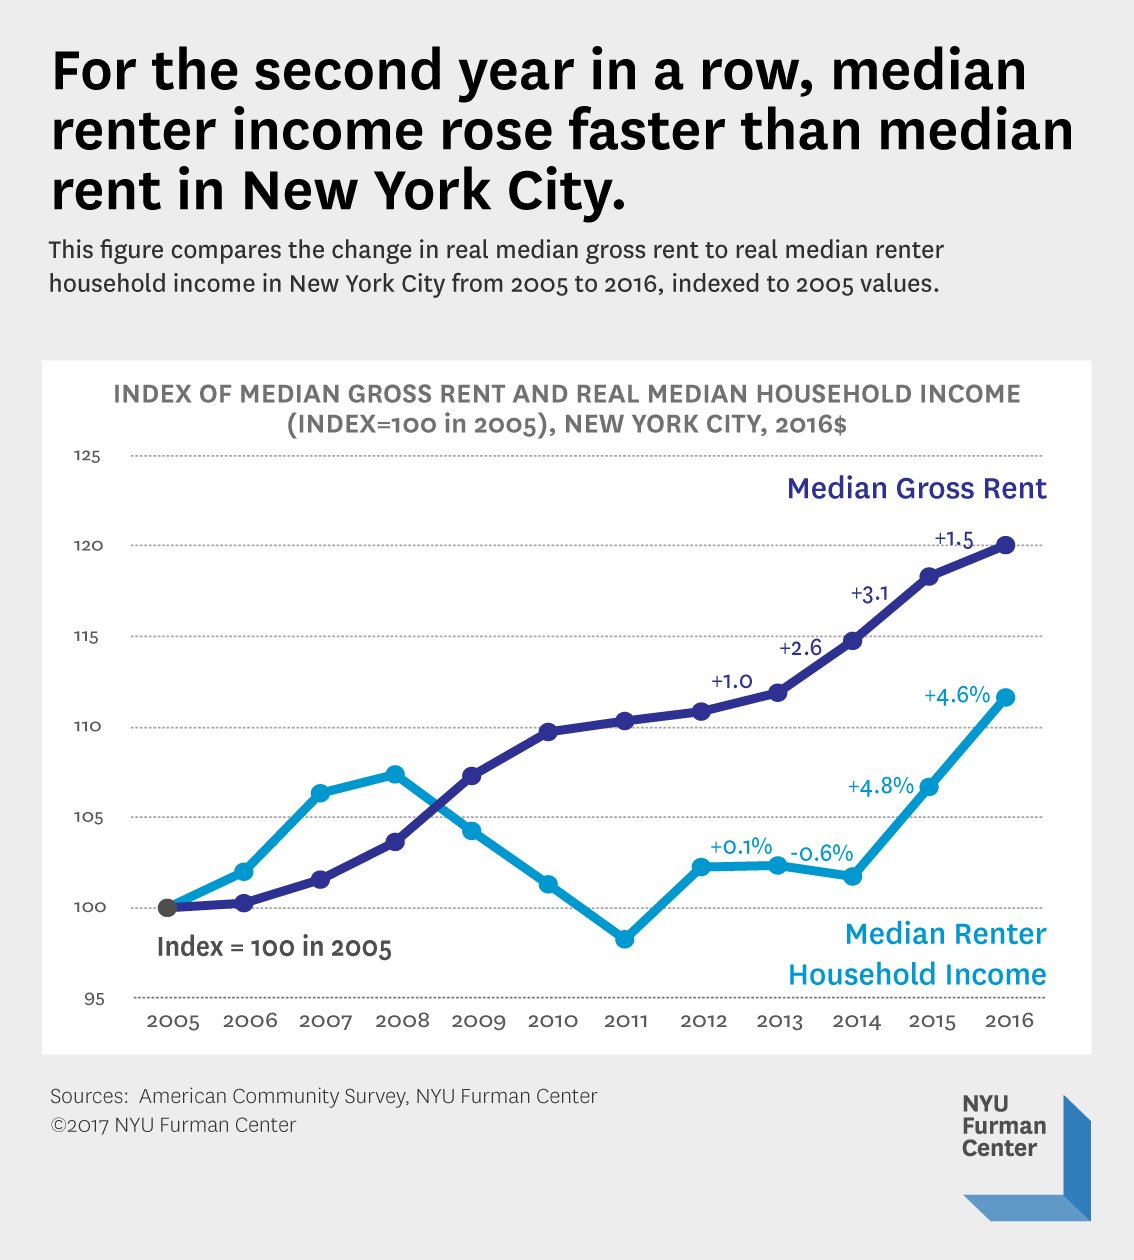 Nyc Rents: New York City Median Renter Income Continued Its Upward